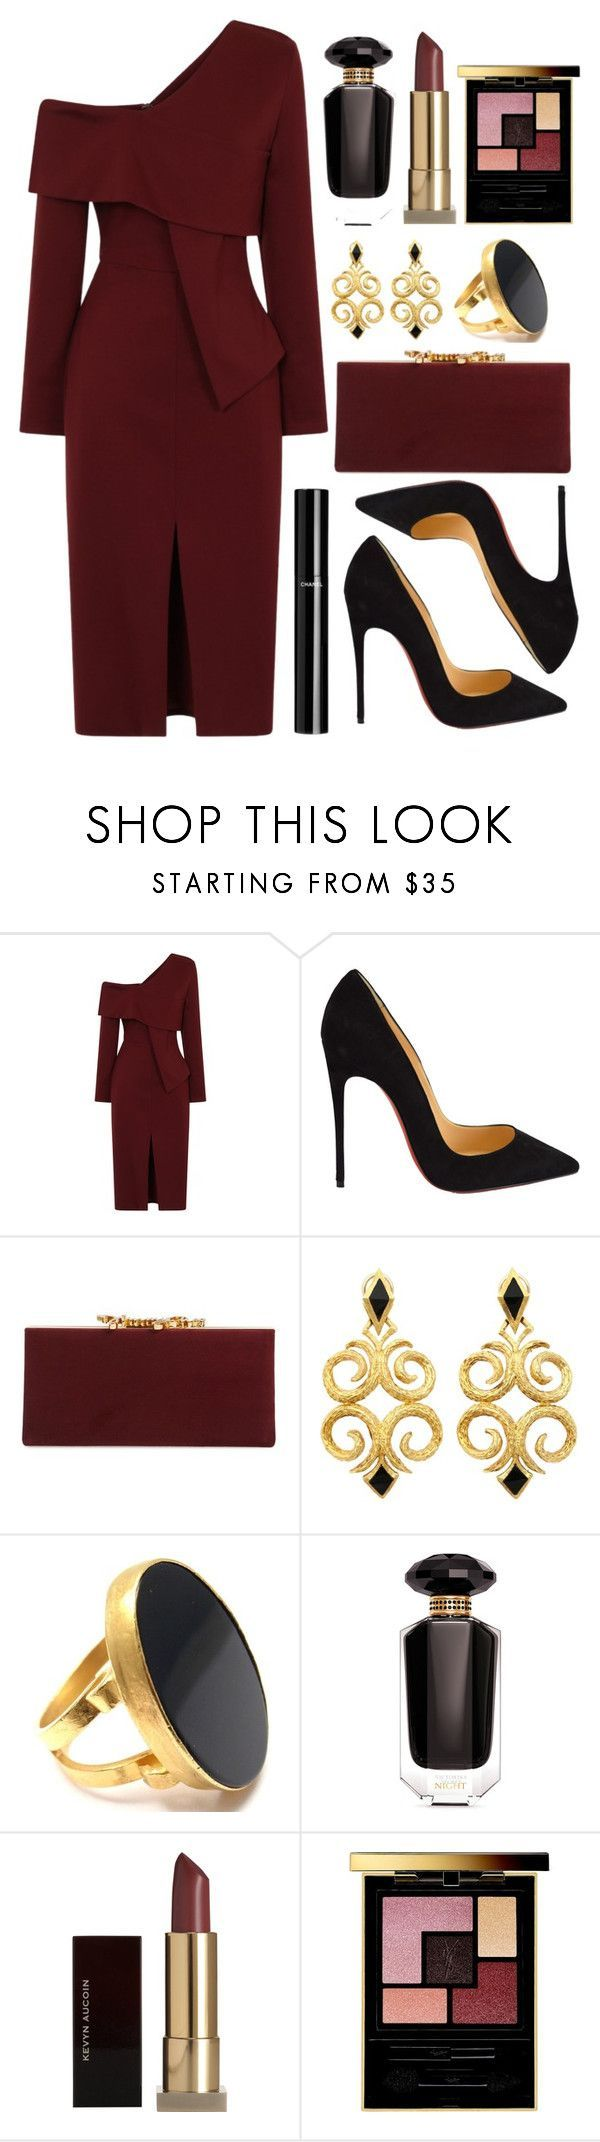 Untitled #4393 by natalyasidunova ❤ liked on Polyvore featuring Christian Louboutin, Jimmy Choo, Yossi Harari, Victoria's Secret, Kevyn Aucoin, Yves Saint Laurent and Chanel